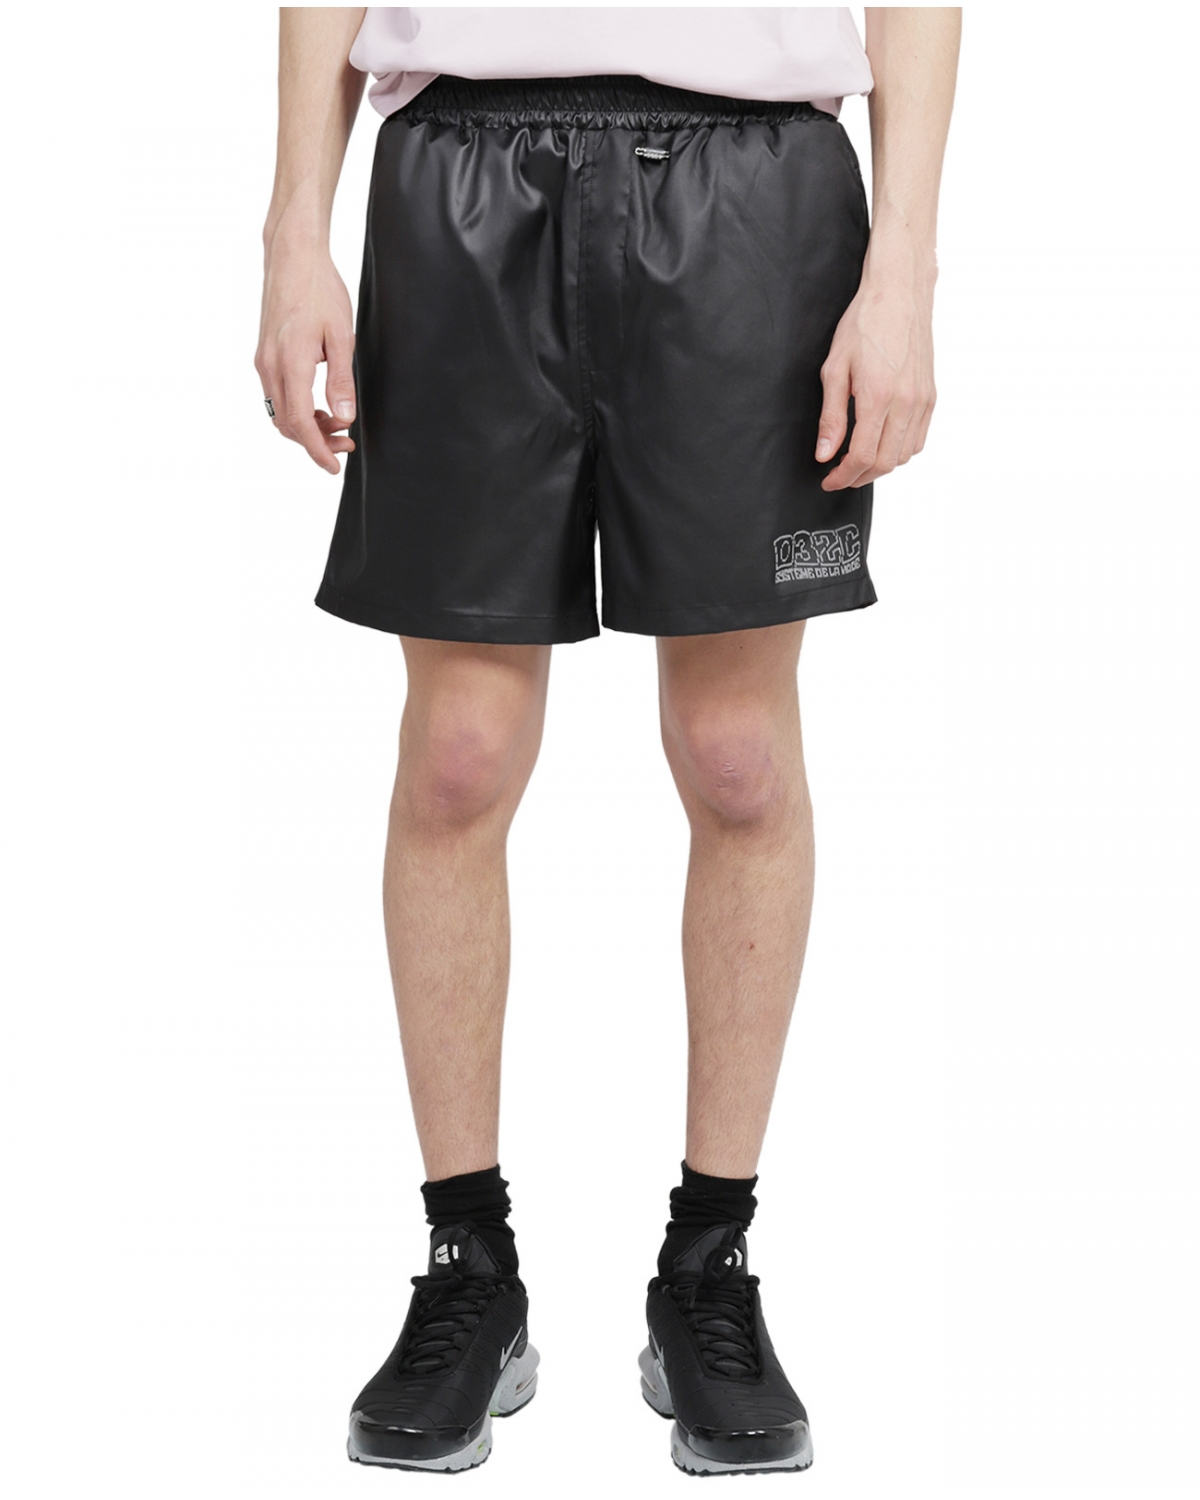 032c black ISBN swim shorts